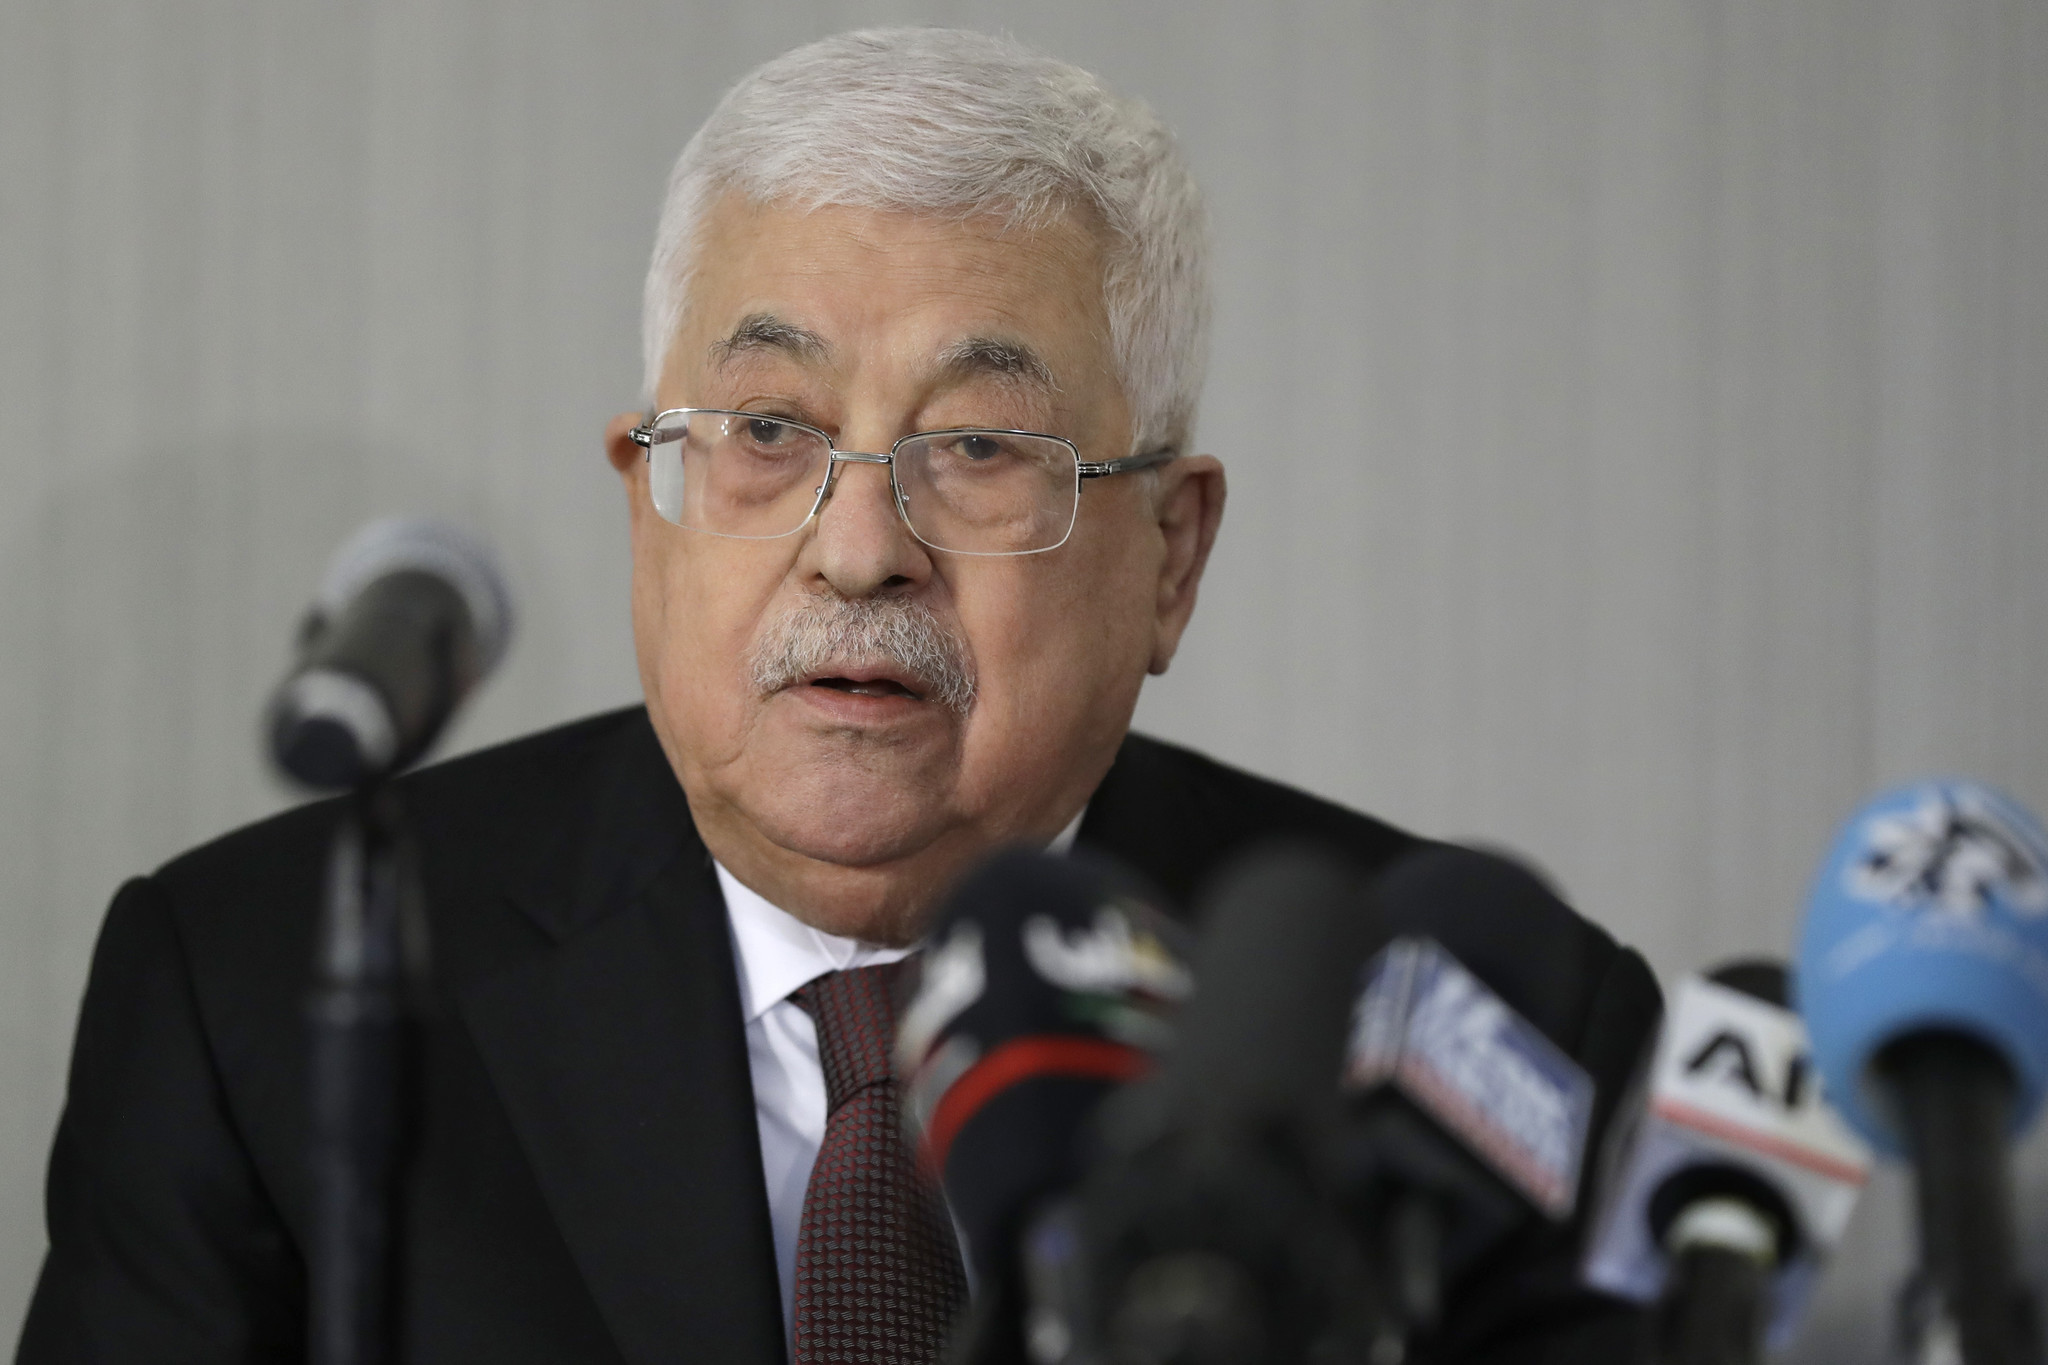 Mahmoud Abbas is ailing; who leads Palestinians next?